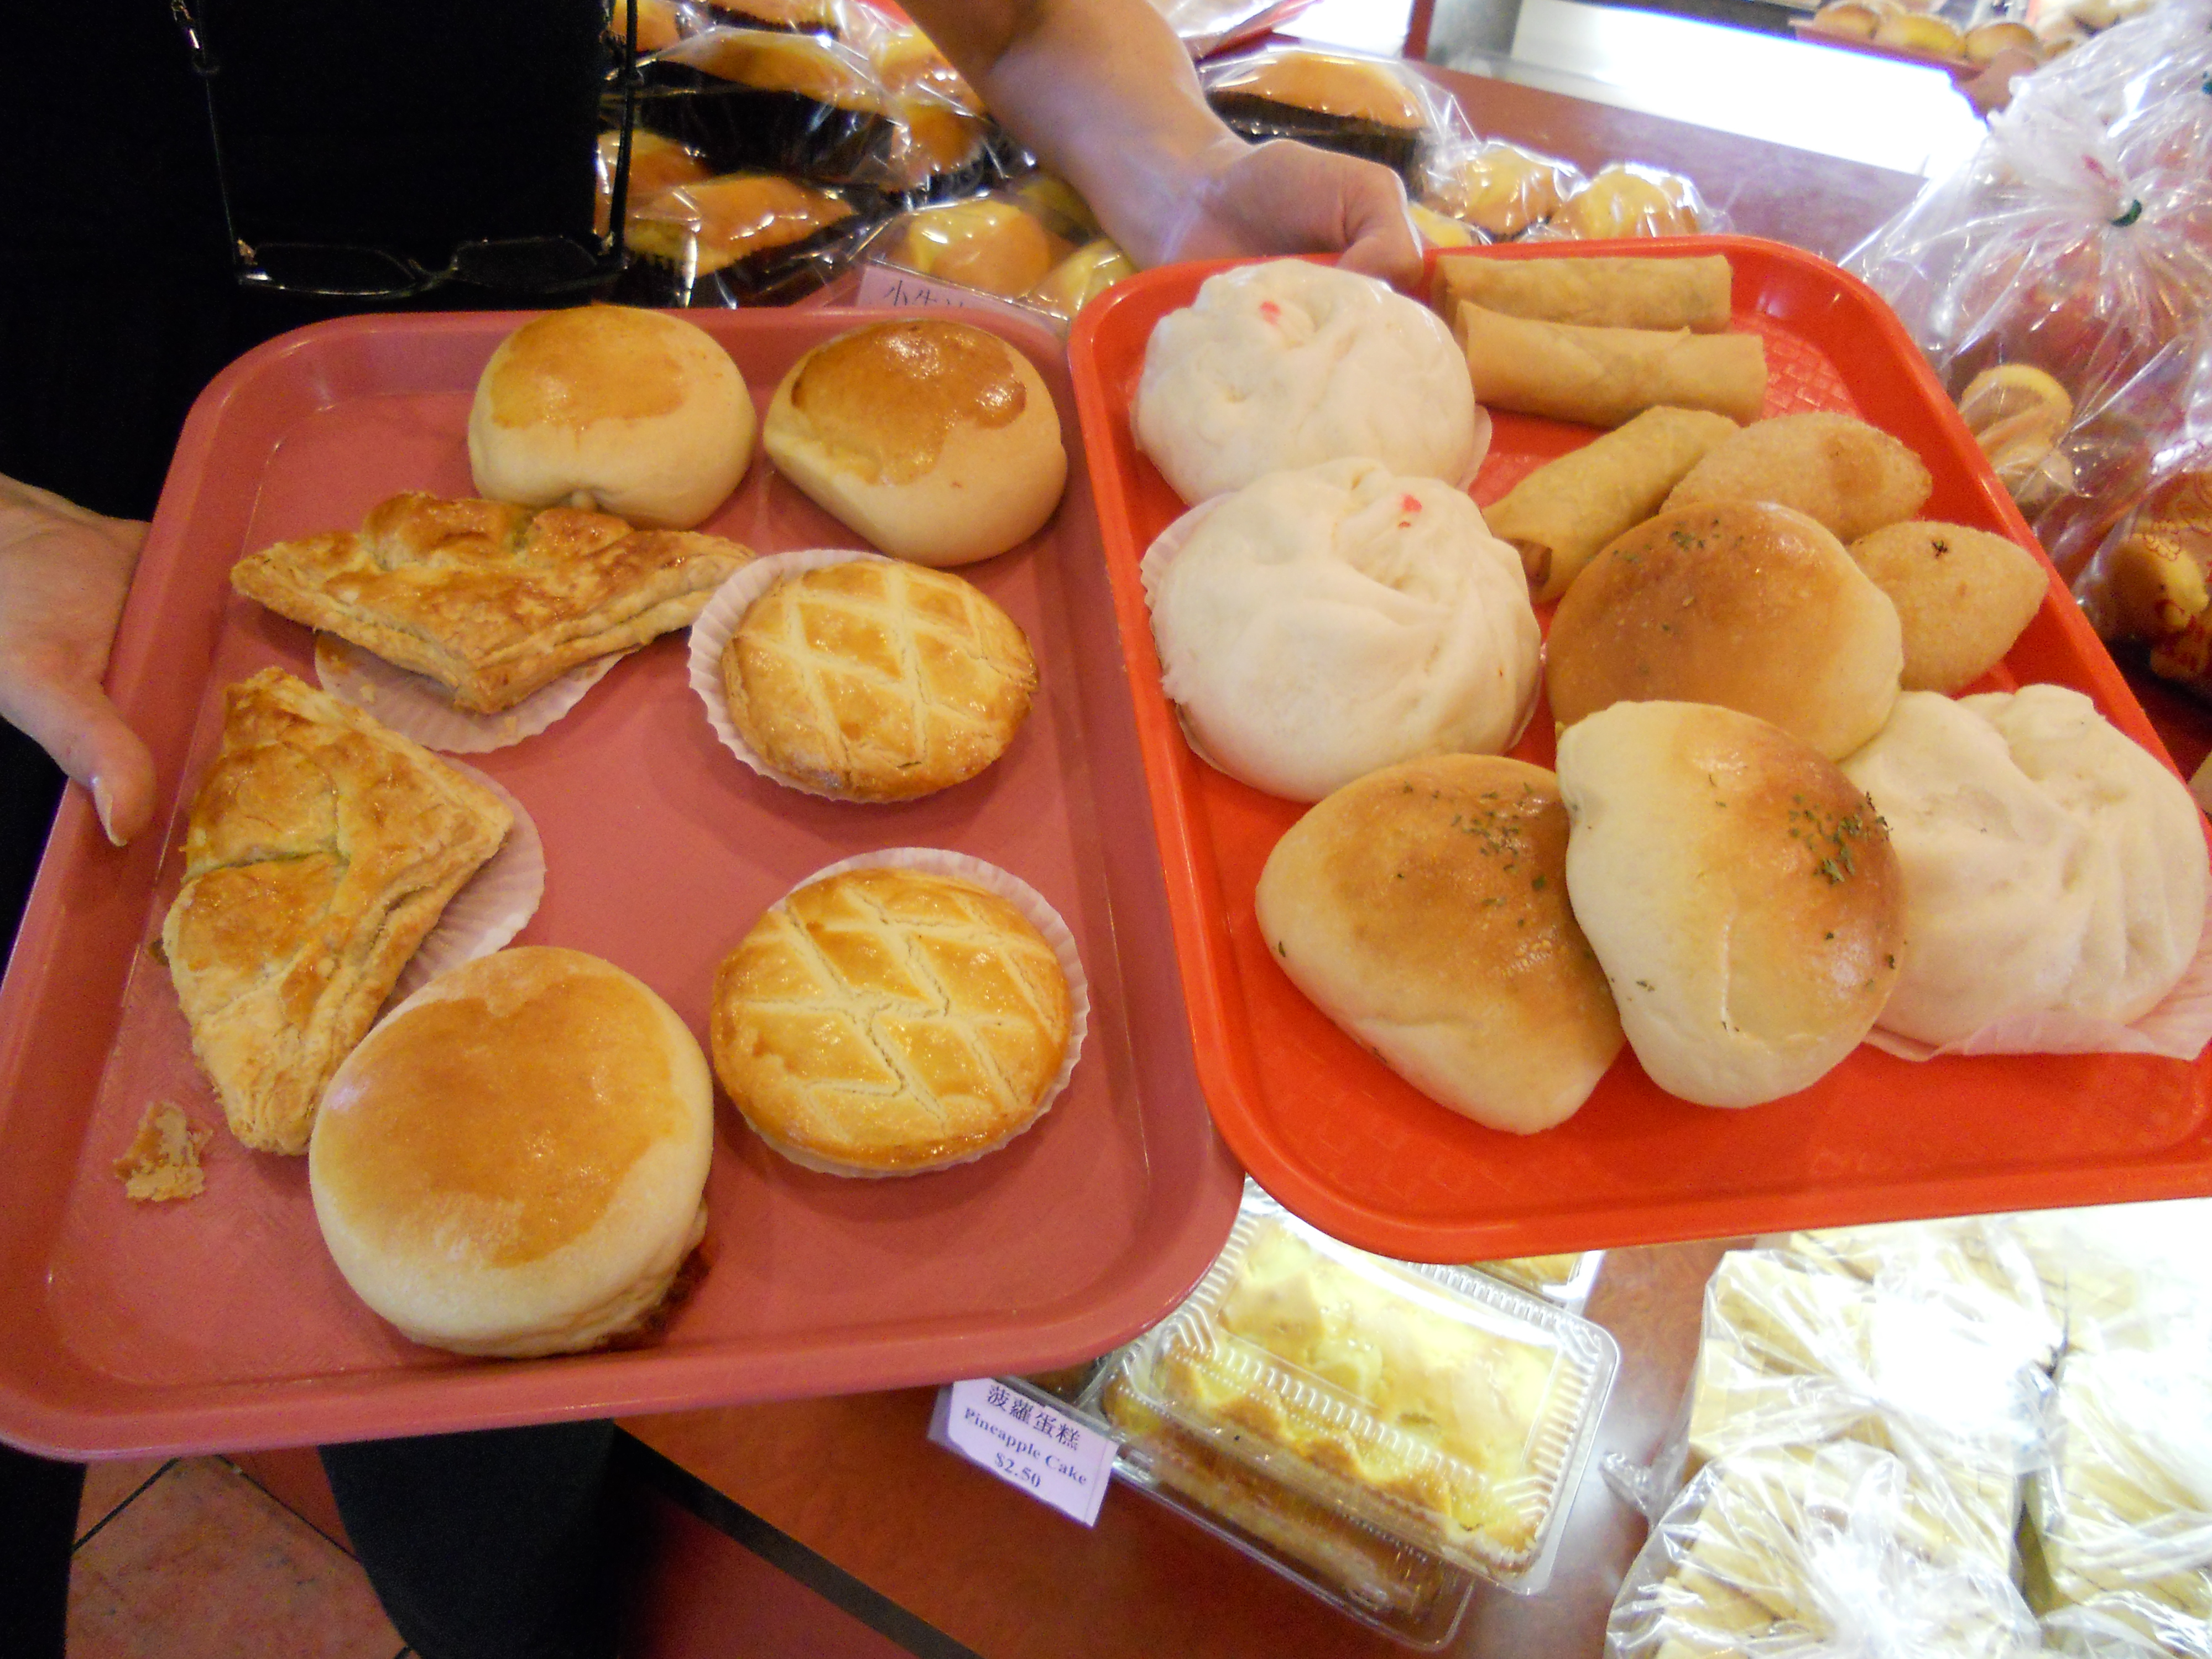 Off to Chinese Bakery to Fill Up on Buns | emer schlosser